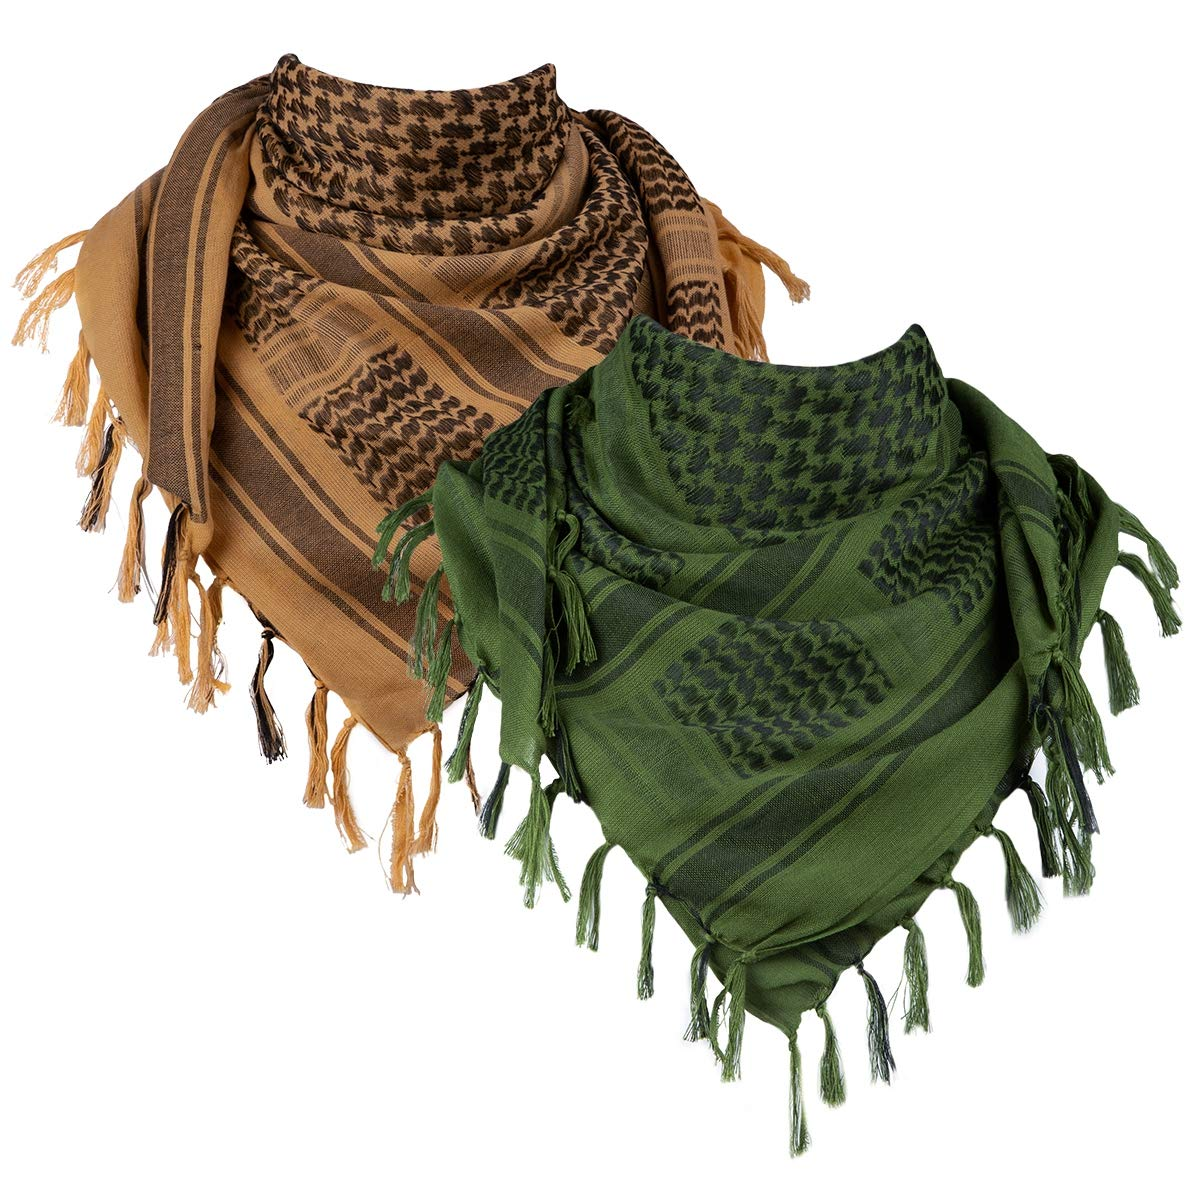 FREE SOLDIER 100% Cotton Military Shemagh Tactical Desert Keffiyeh Head Neck Scarf Arab Wrap 2 Pack (Coyote Brown & Army Green)